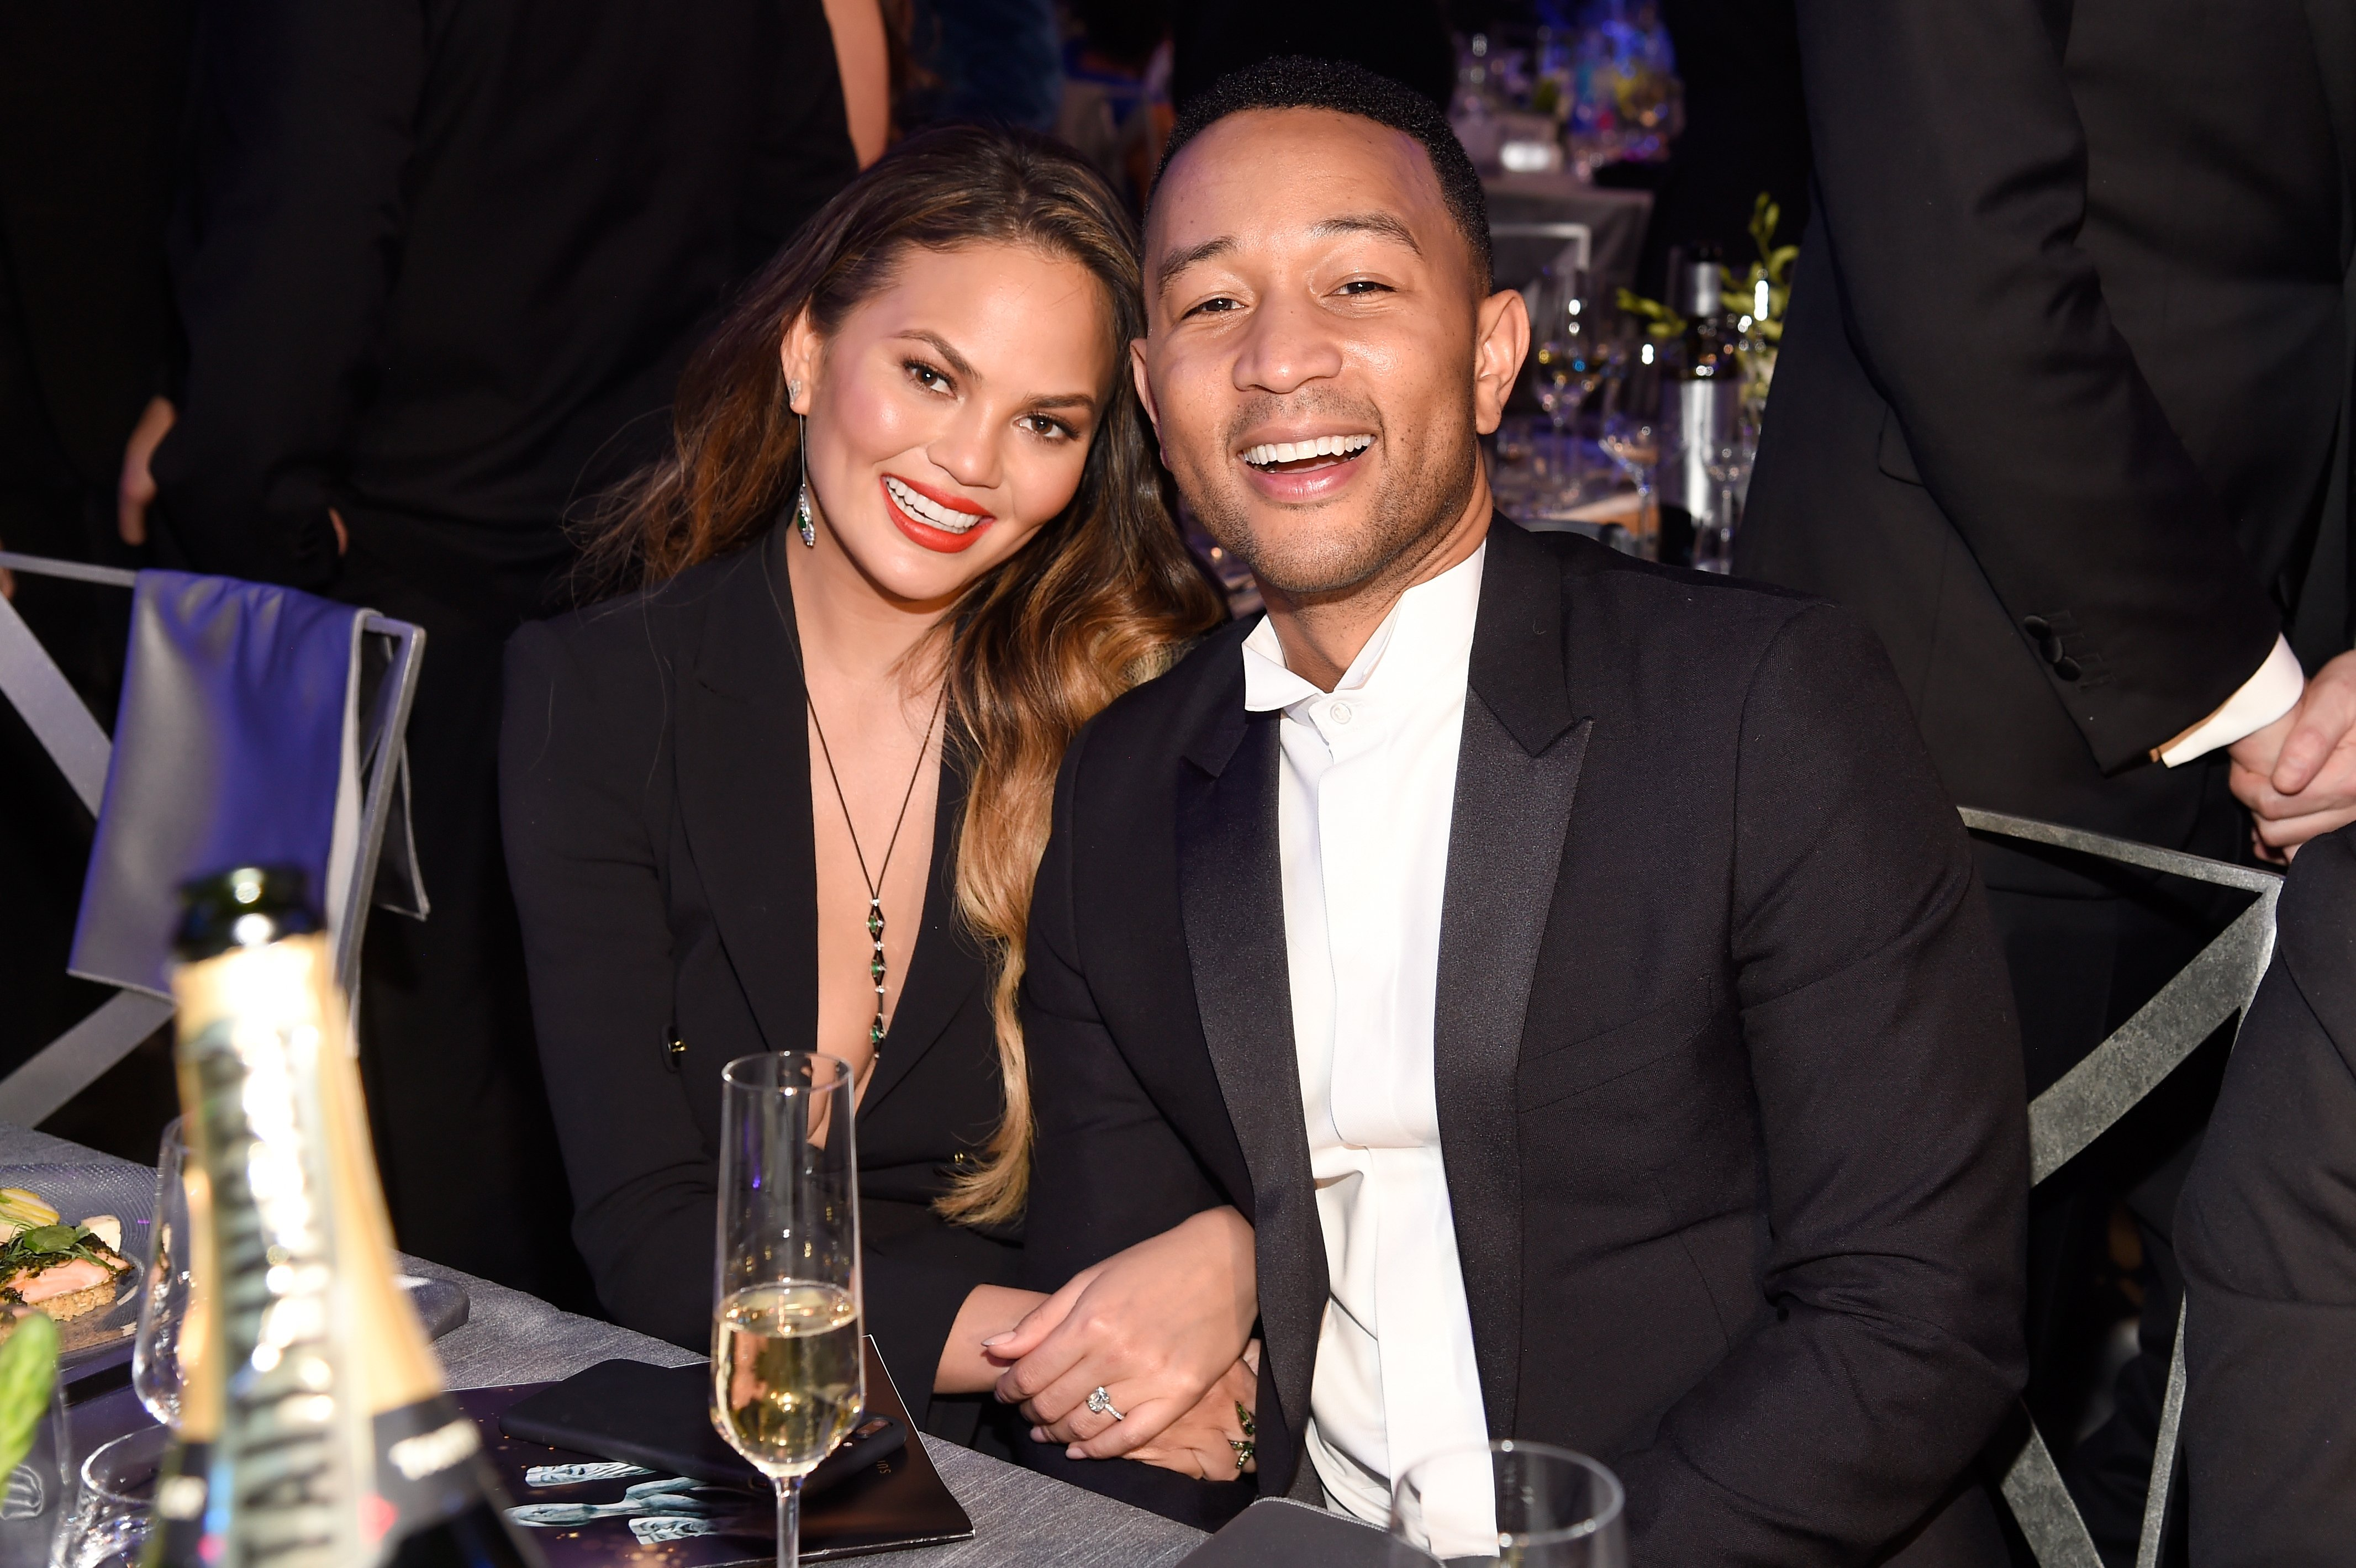 Chrissy Teigen and John Legend during The 23rd Annual Screen Actors Guild Awards at The Shrine Auditorium on January 29, 2017. | Source: Getty Images